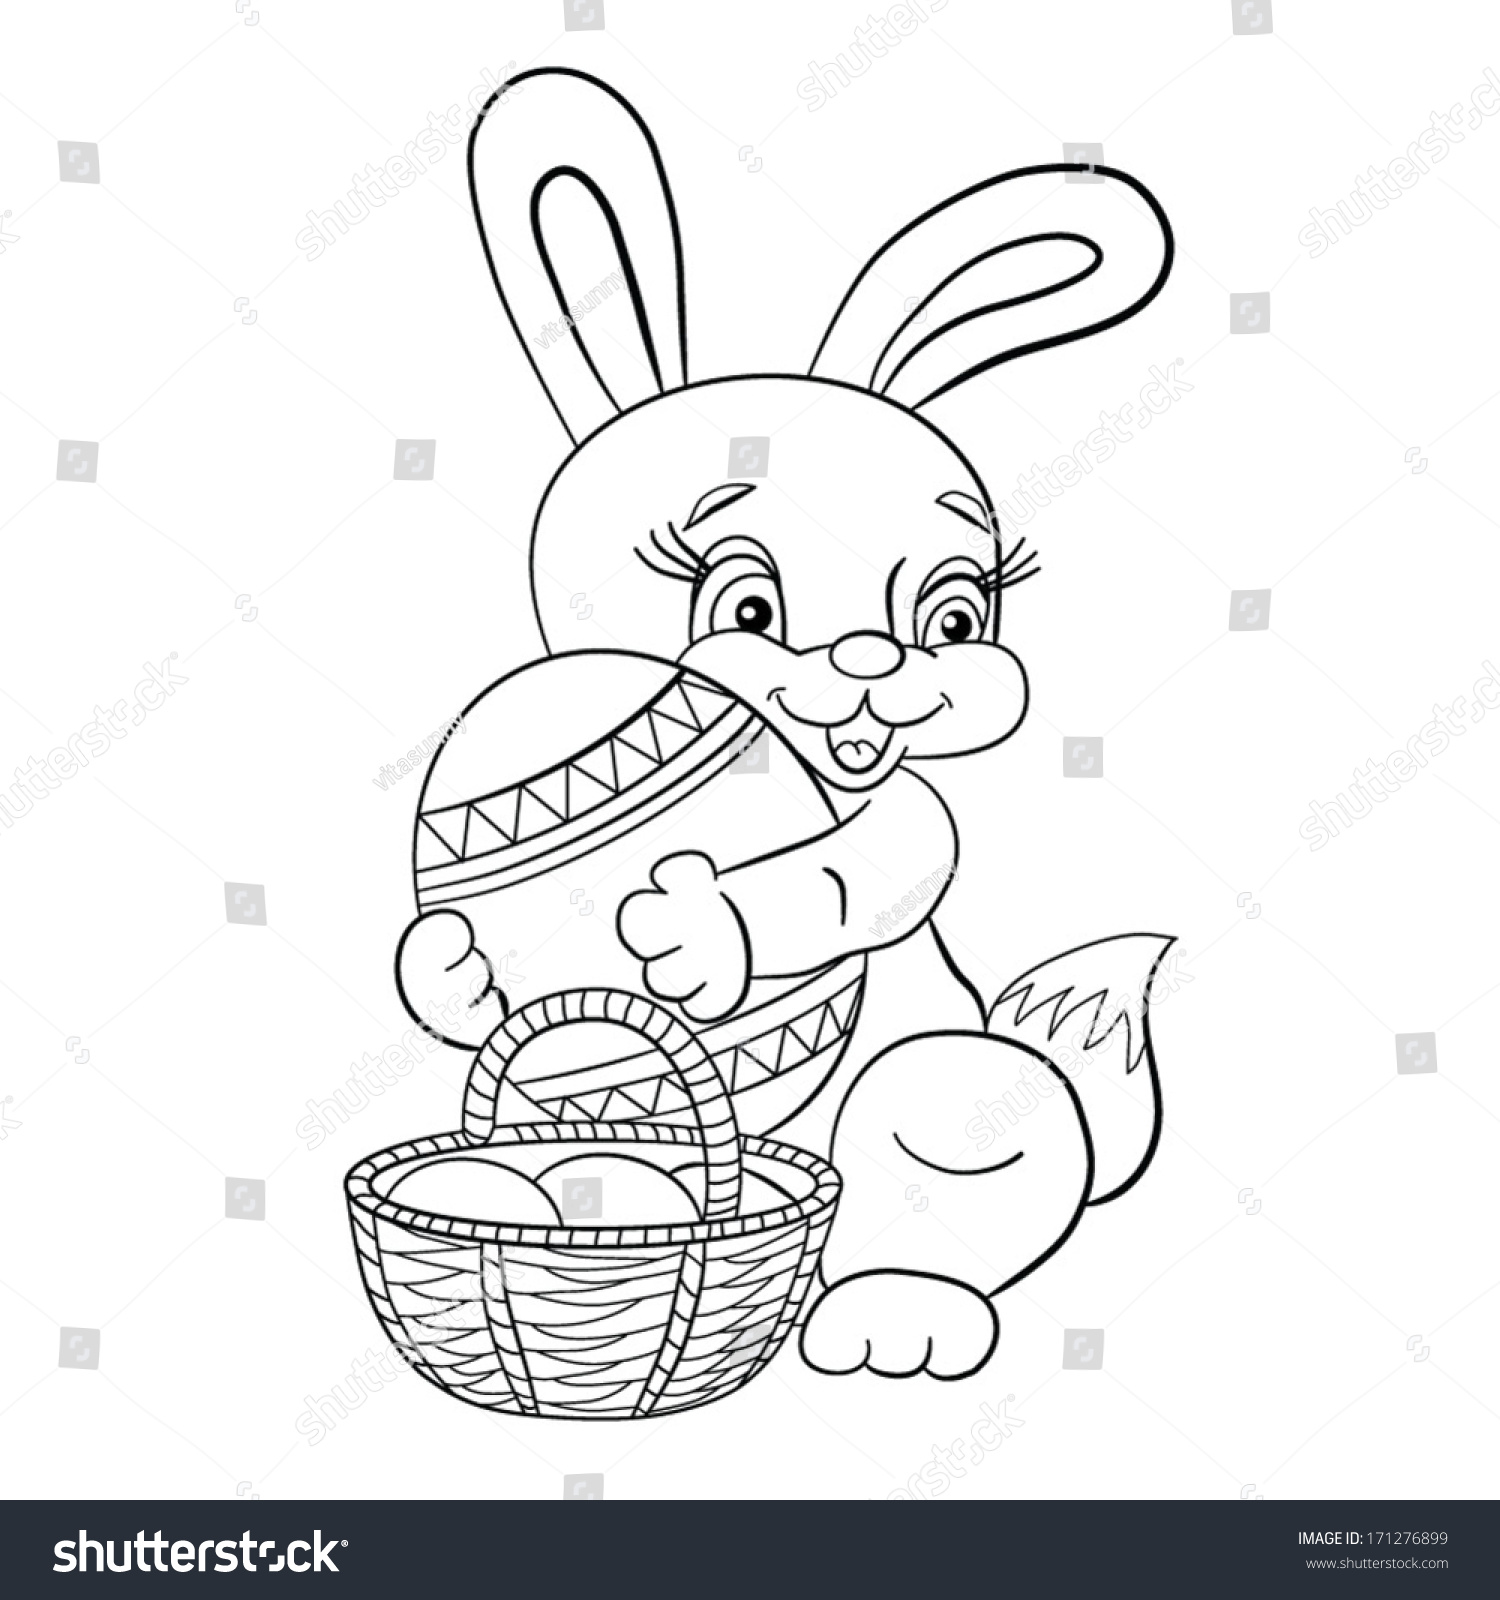 coloring book rabbit pictures : Co Coloring Book Rabbit Pictures 1